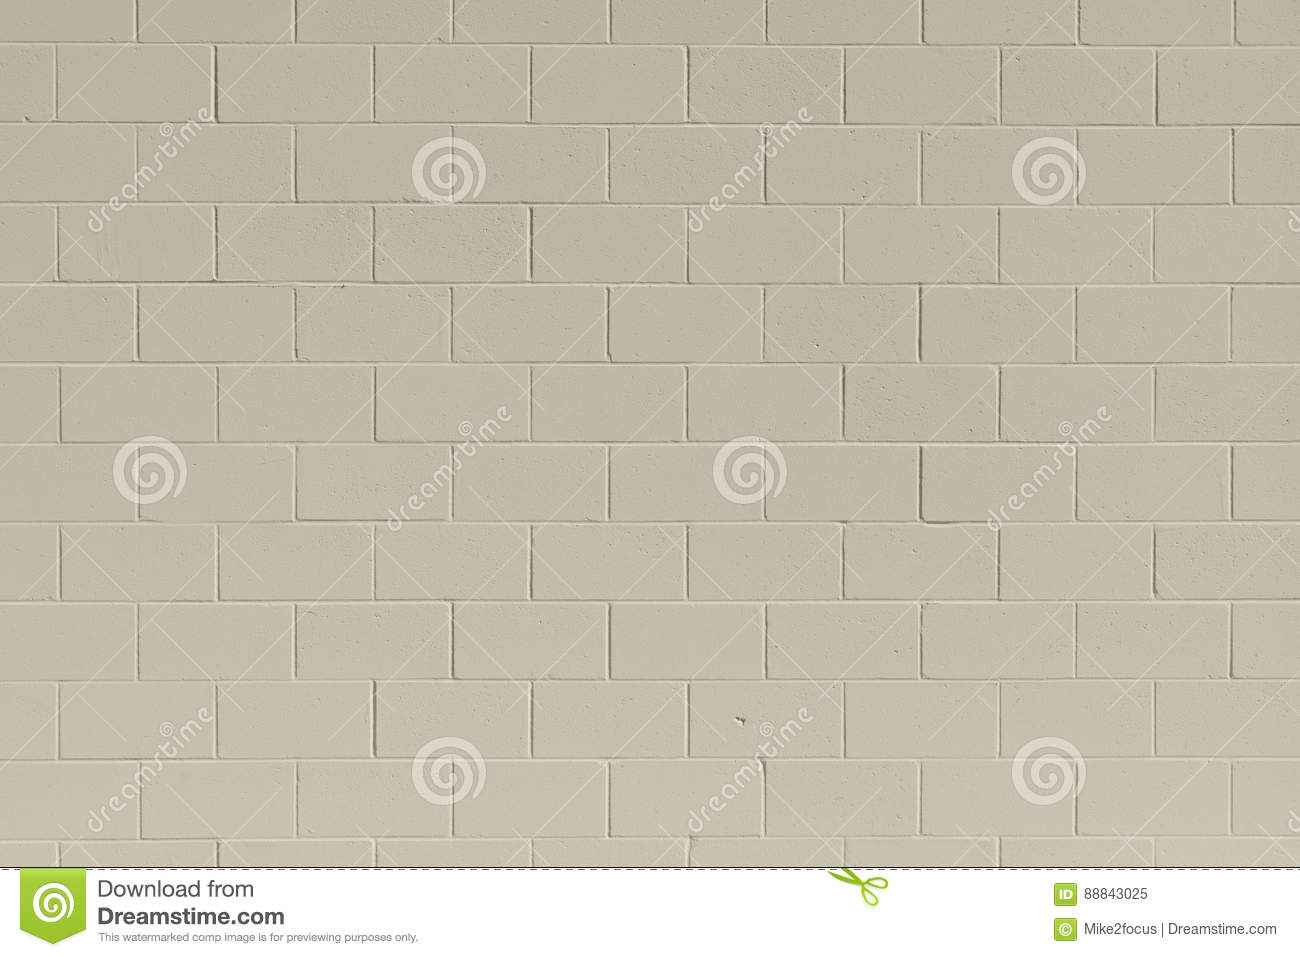 Painted cinder block wall texture - Background Block Brick Cinder Clean Freshly Painted Tan Wall